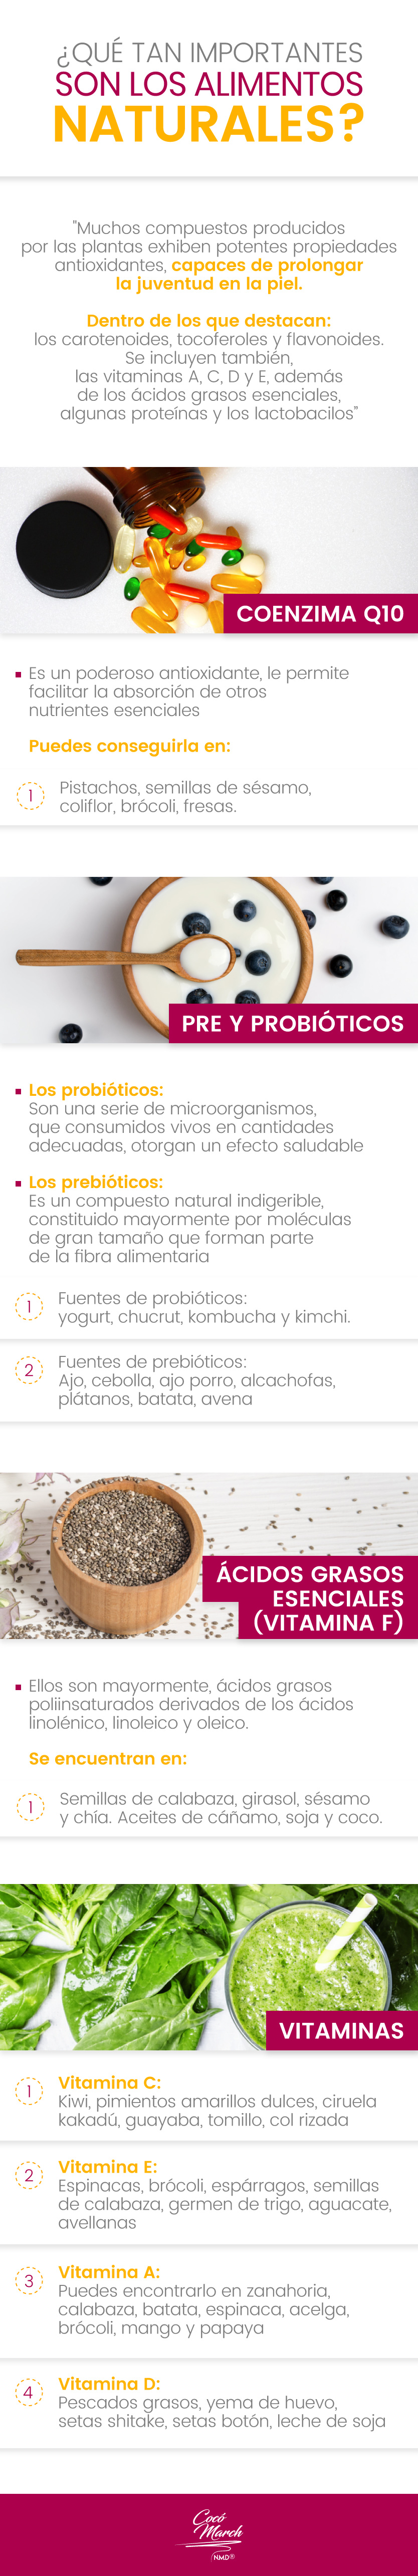 alimentos+naturales